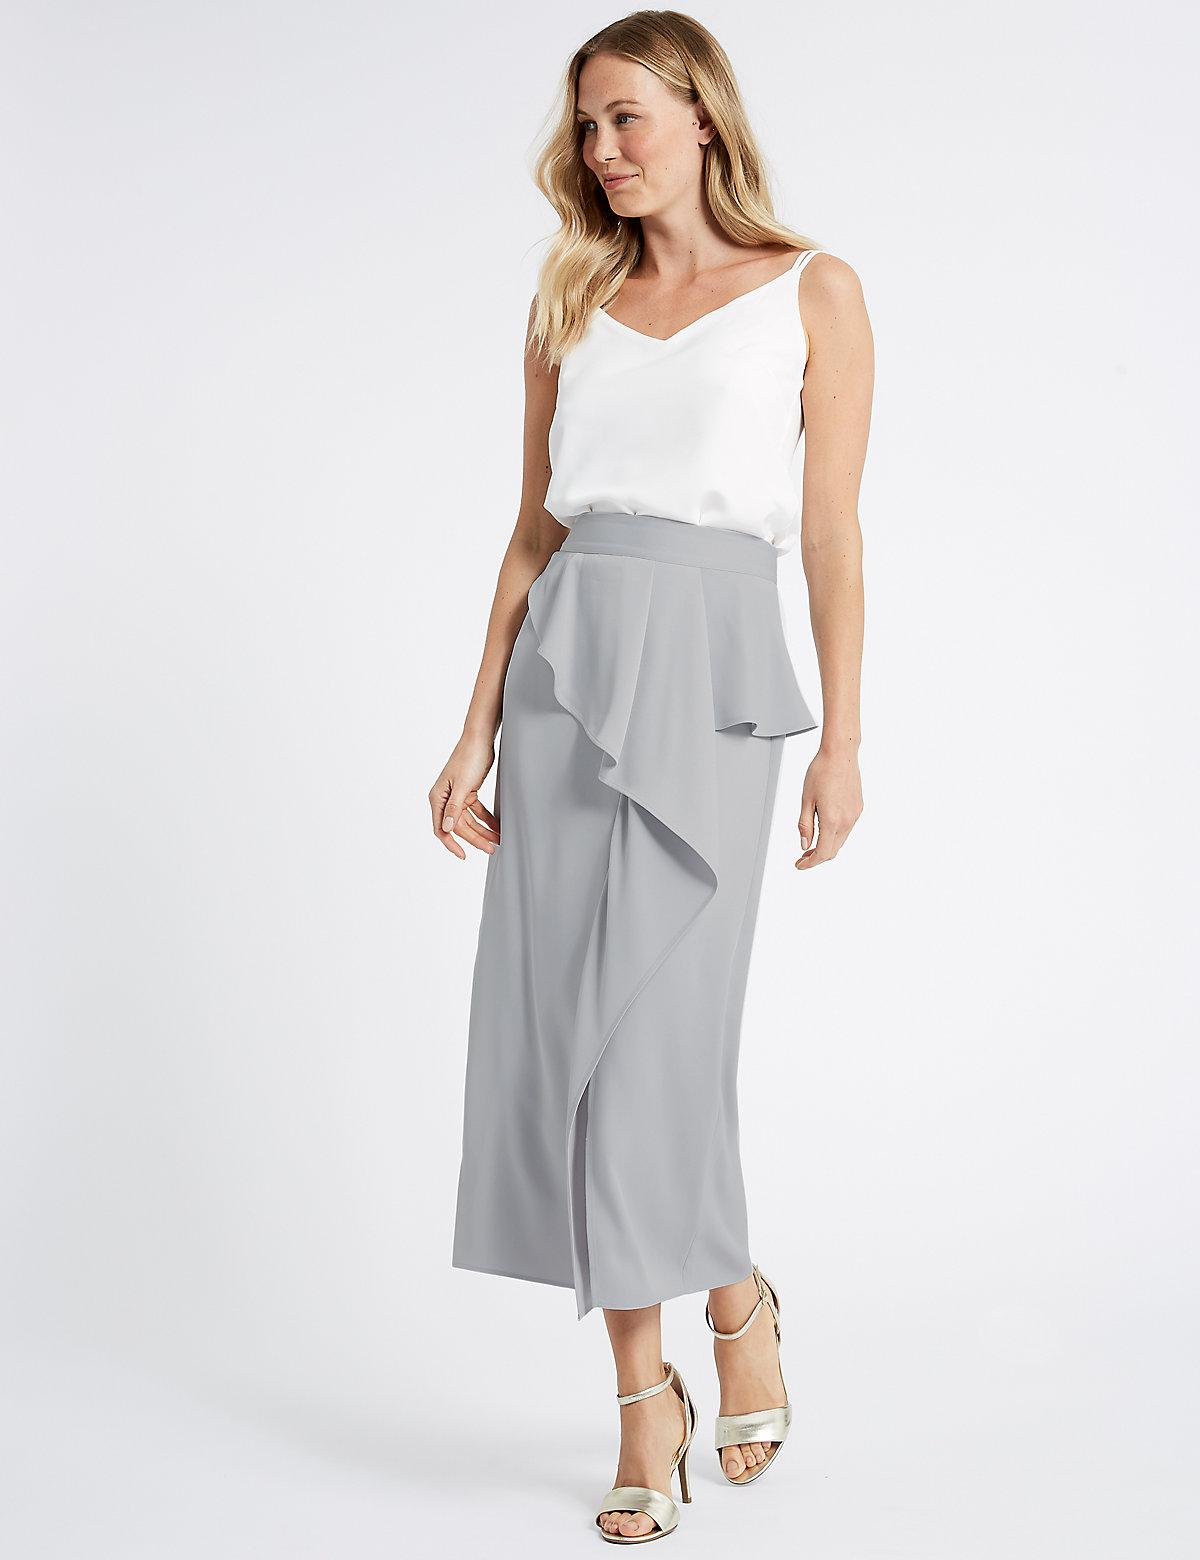 Buy Cheap Low Shipping Fee Frill Maxi Skirt silver grey Marks and Spencer Cheap Sale Discounts Sale Shopping Online Clearance Store Cheap Price Ke7Bje62f